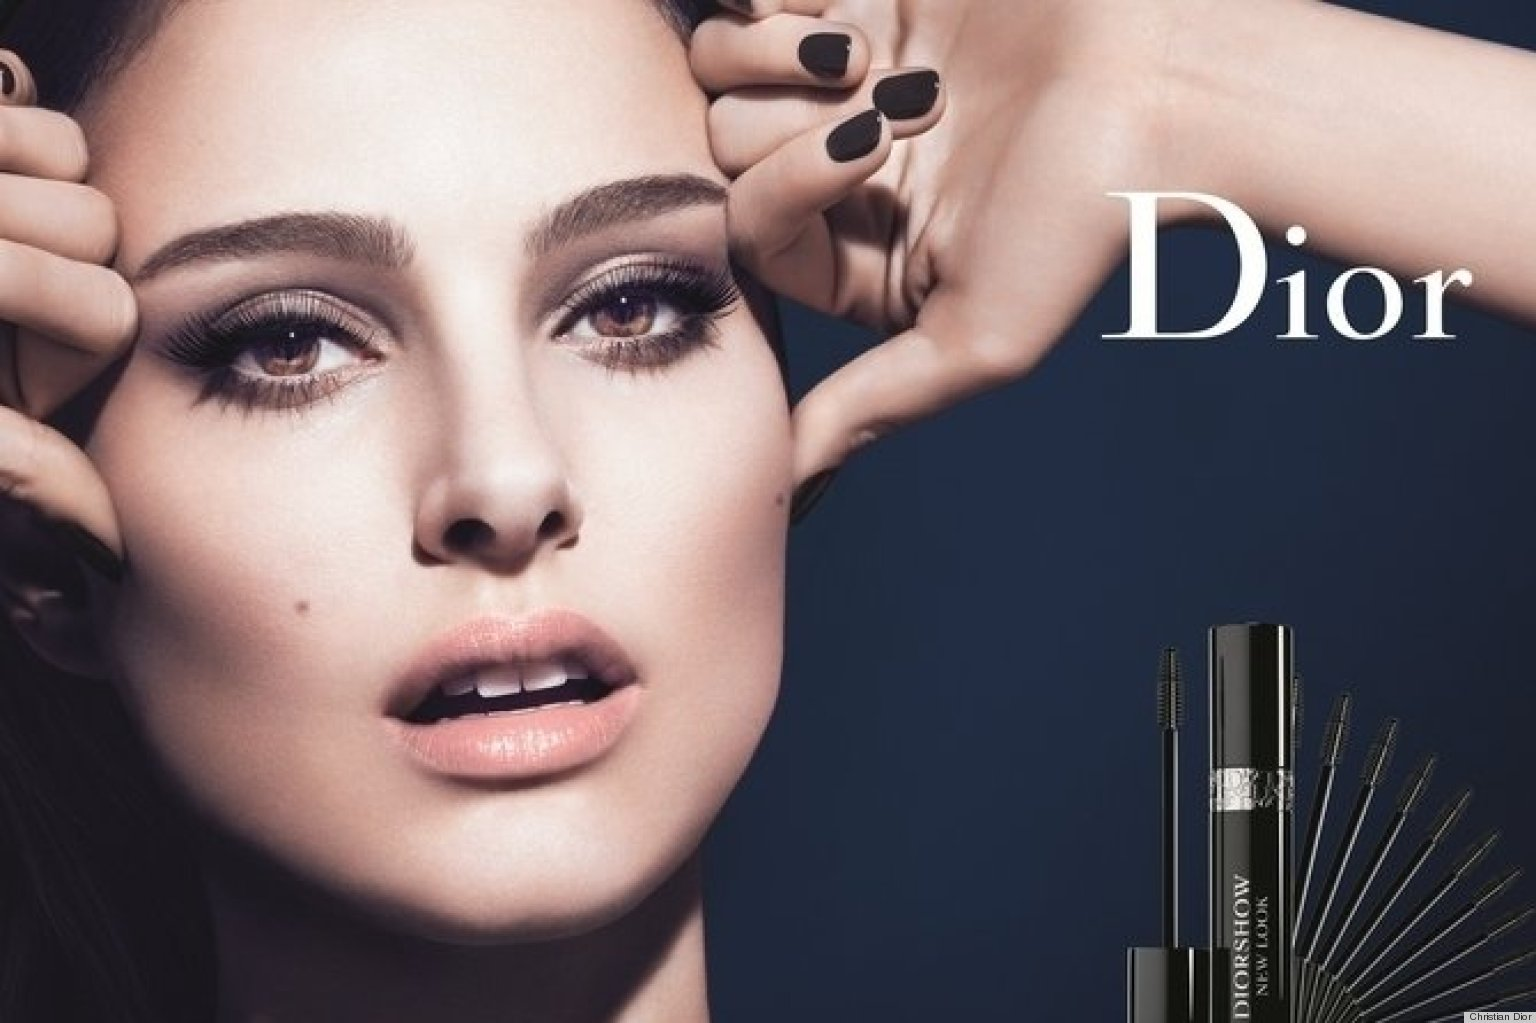 Natalie Portman Dior Ad Banned: Airbrushing In 'New Look ...